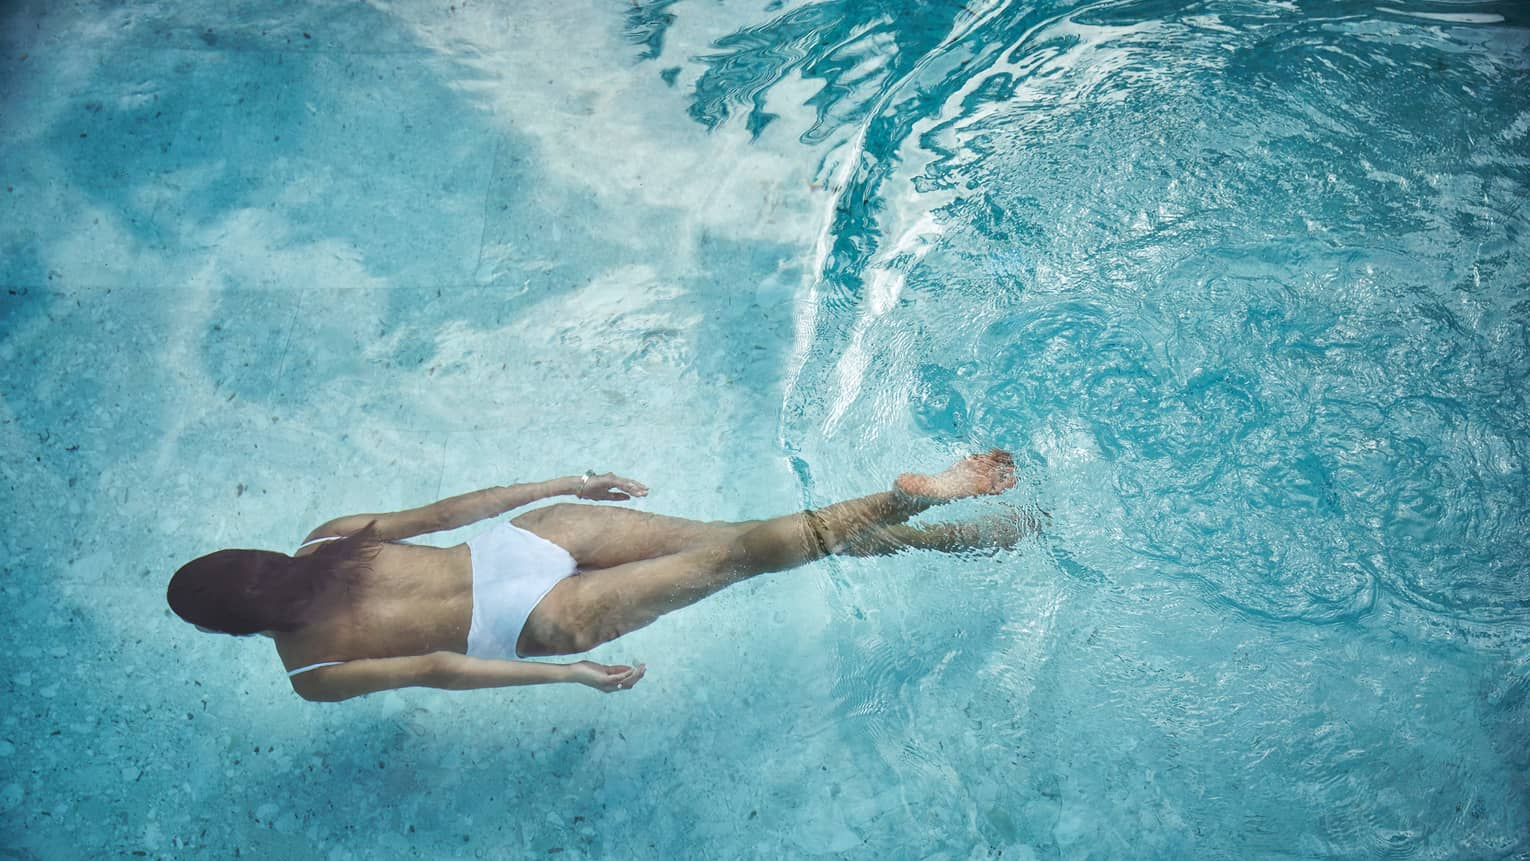 Woman in white swimsuit swimming underwater in blue pool